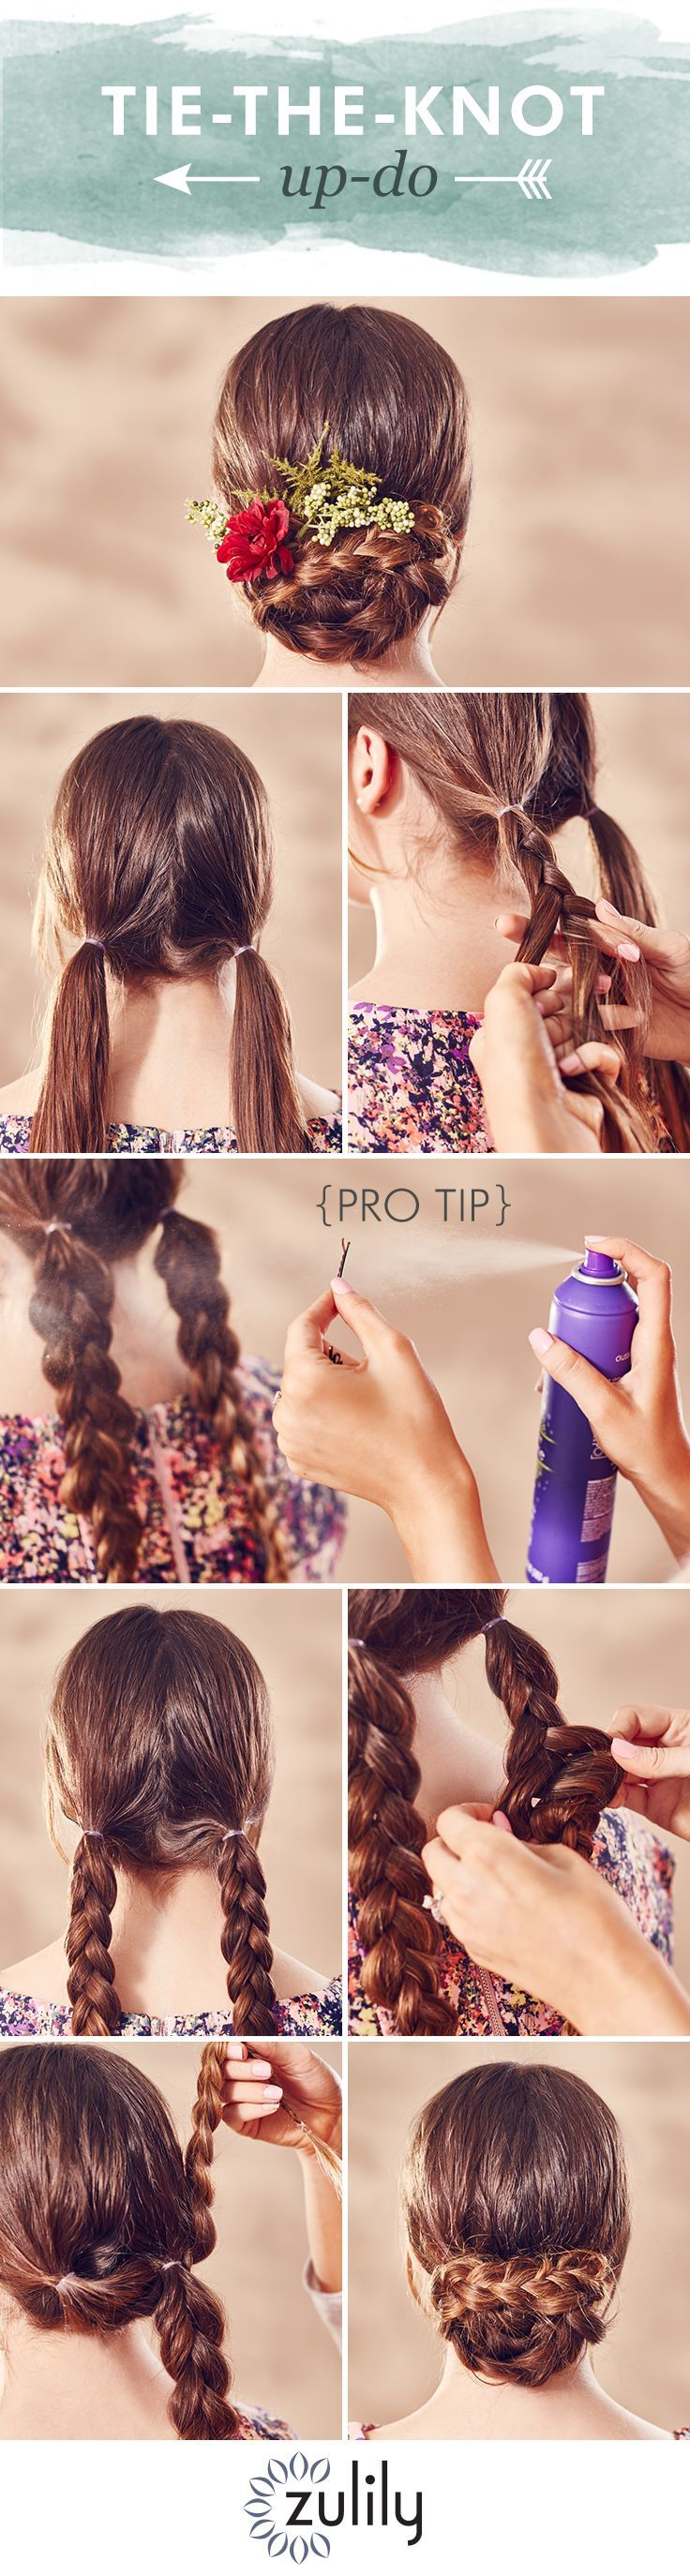 Wear this beautiful braided up-do to all your summer weddings!